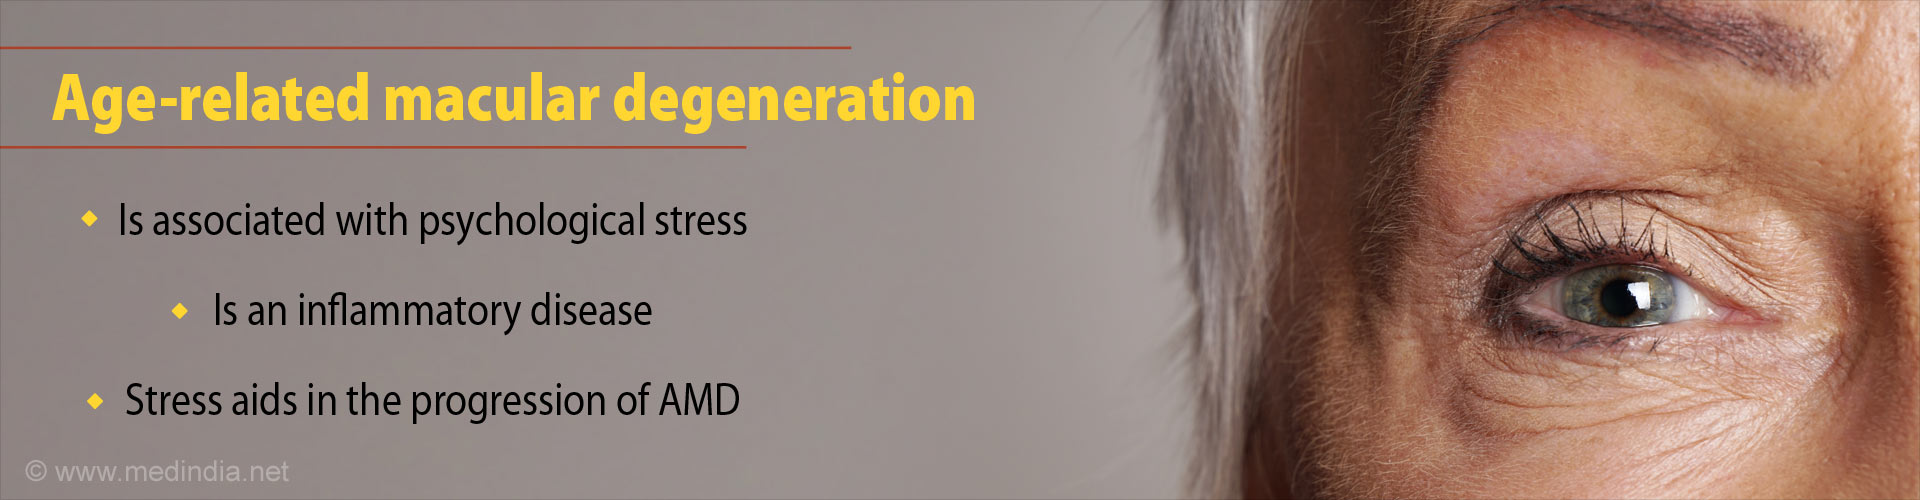 Age-related macular degeneration - Is associated with psychological stress - Is an inflammatory disease - Stress aids in the progression of AMD